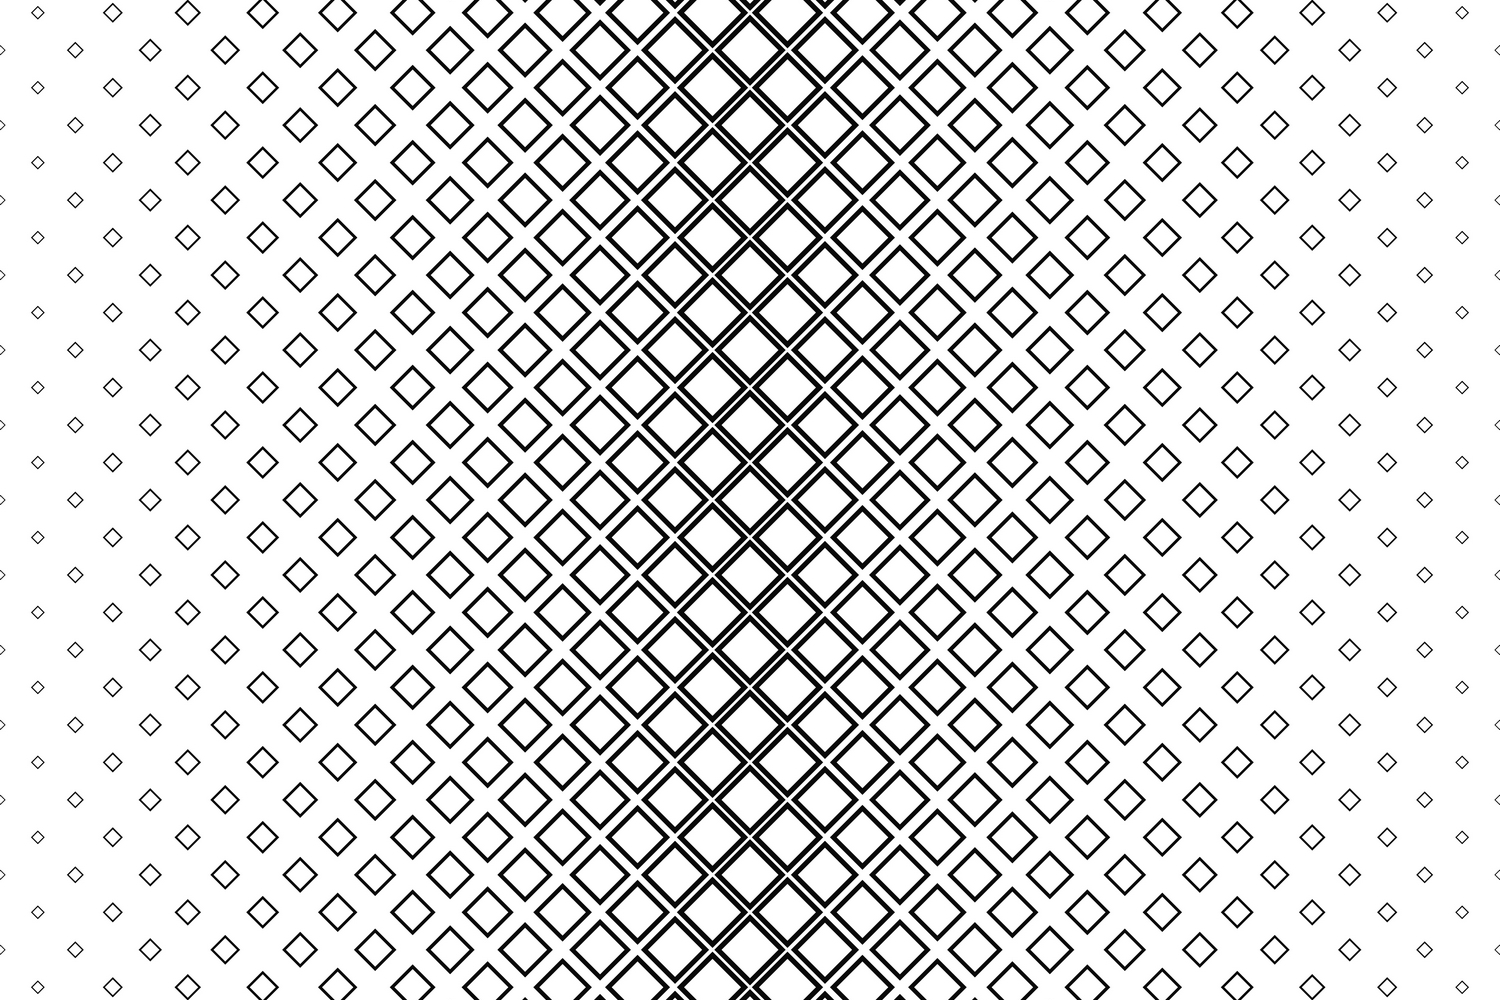 75 Monochrome Geometrical Patterns AI, EPS, JPG 5000x5000 example image 12